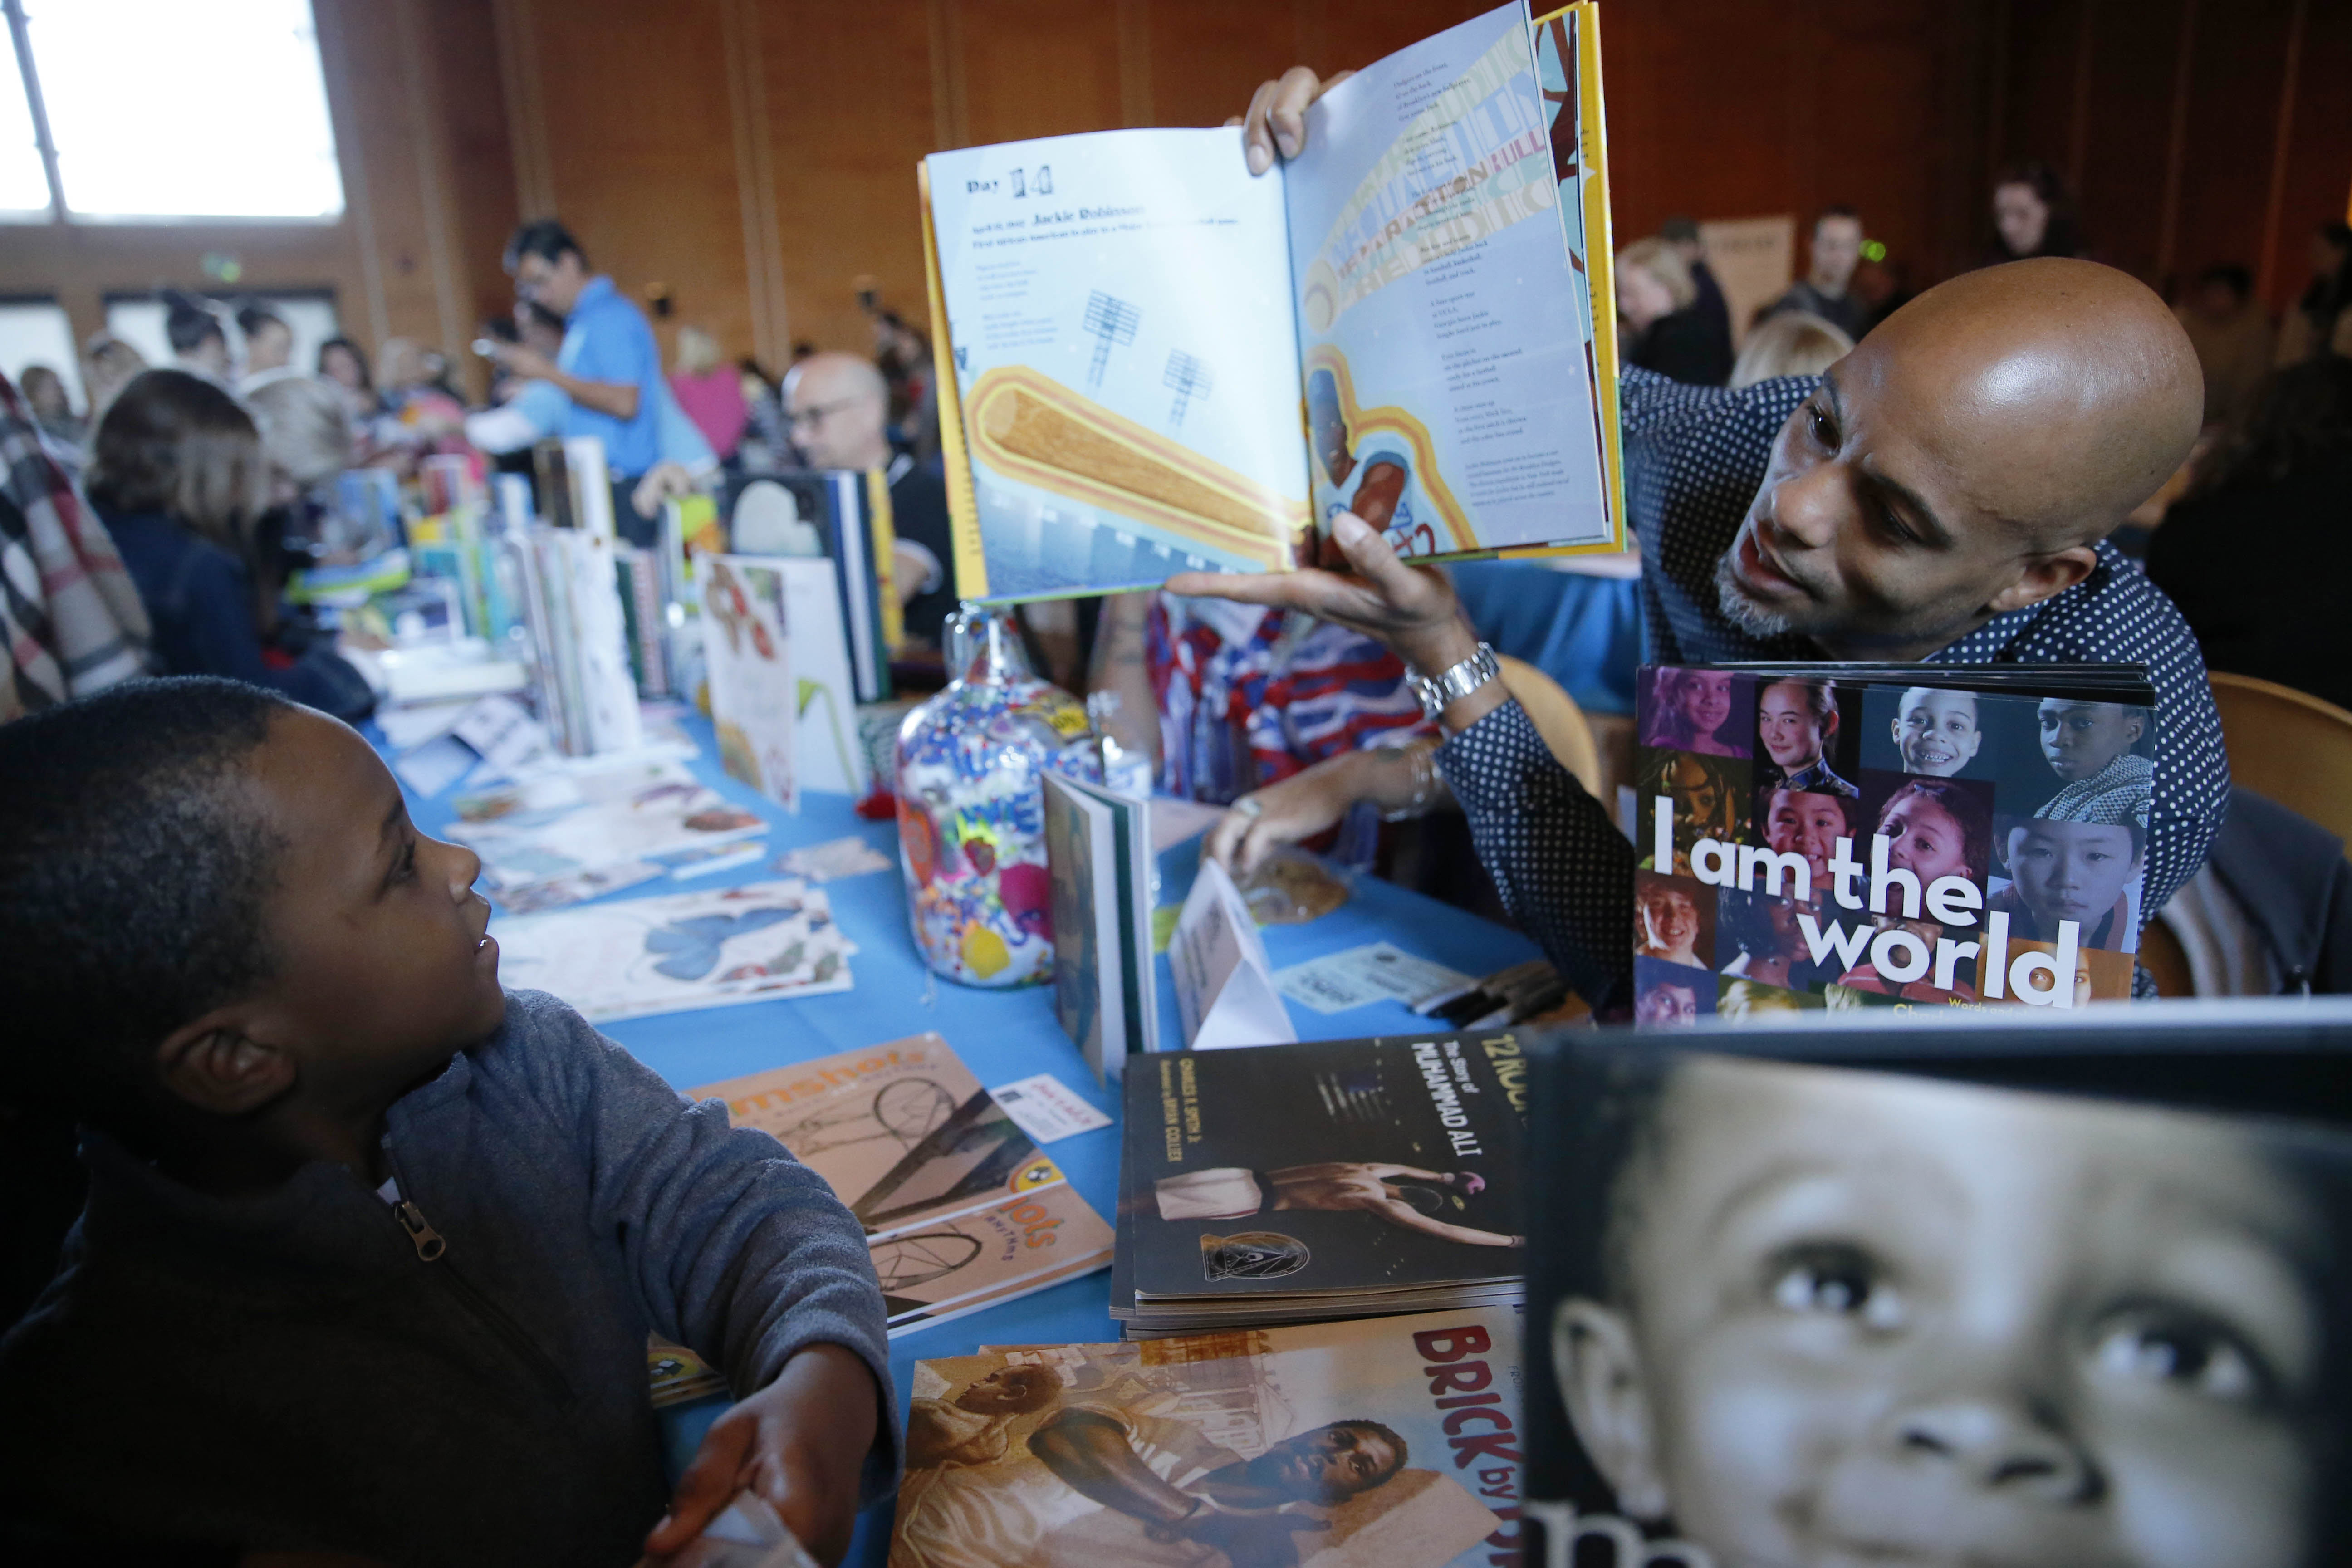 """Author Charles R. Smith Jr. holds up a copy of his book """"28 Days: Moments in Black History that Changed the World"""" while telling young Joshua Bell, 4, of Buffalo, about baseball player Hank Aaron at the WNY Children's Book Expo at Kleinhans. (Derek Gee/Buffalo News)"""